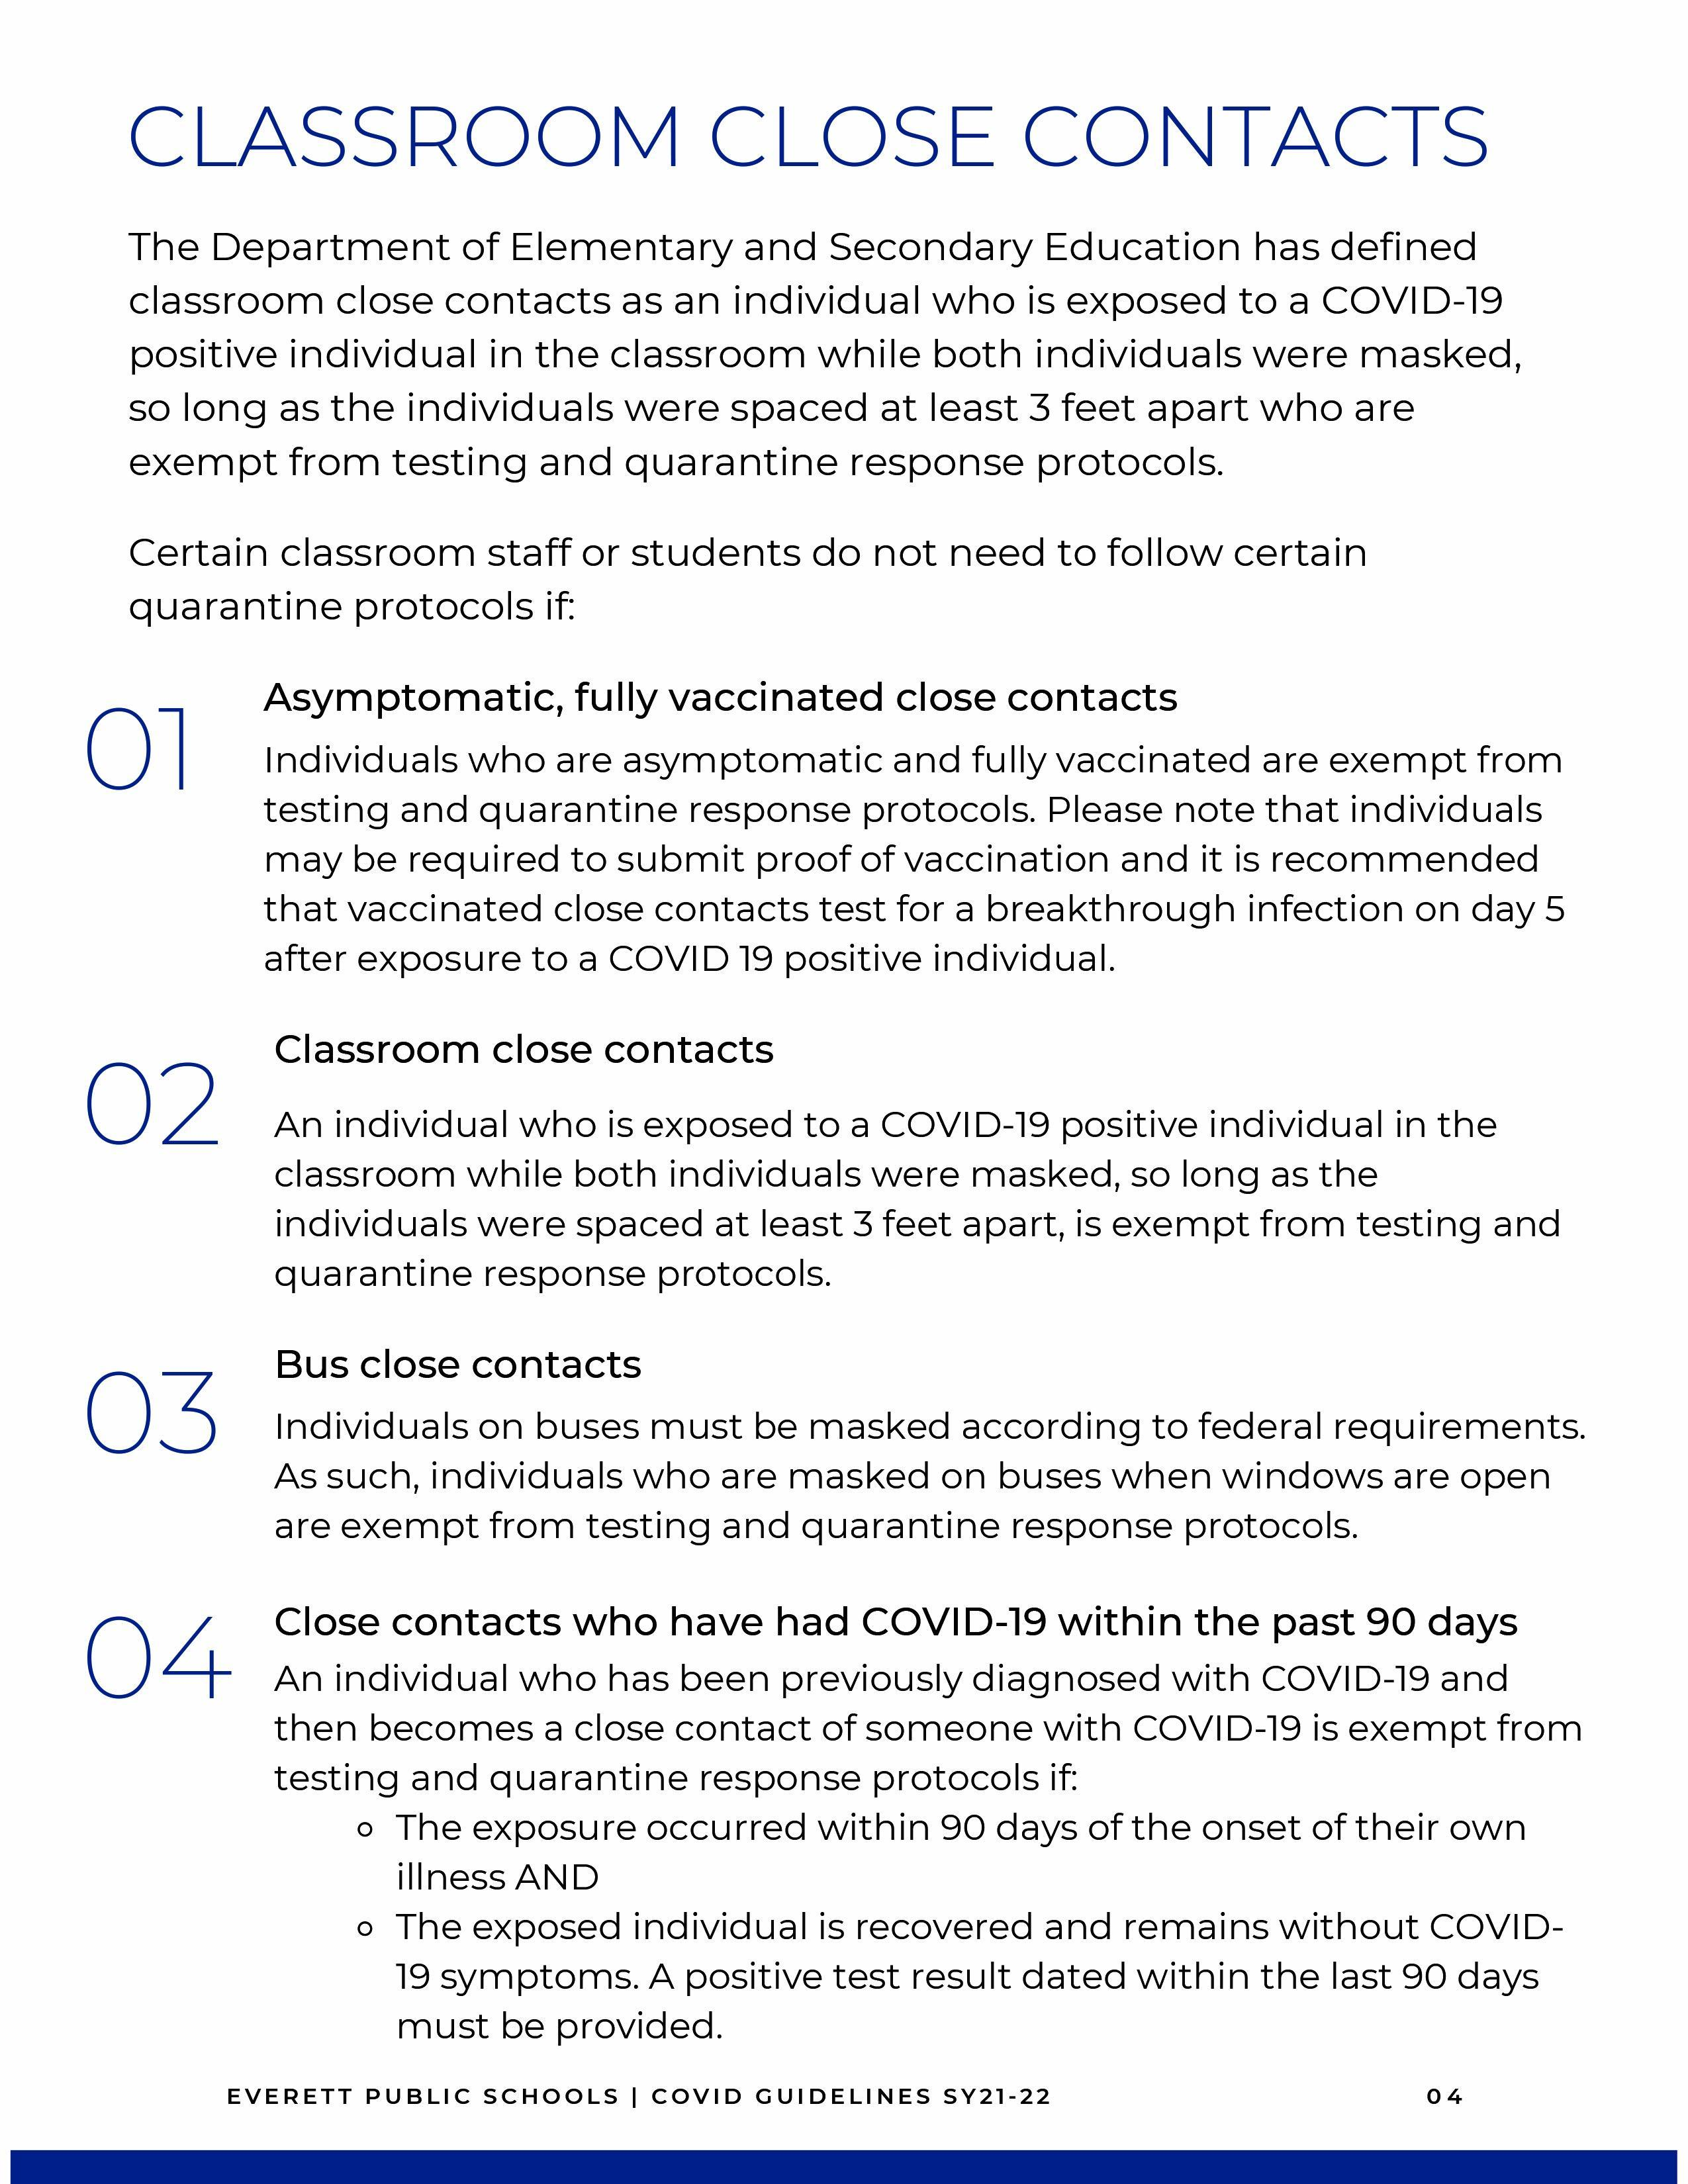 Covid-19 safety flyer, all text